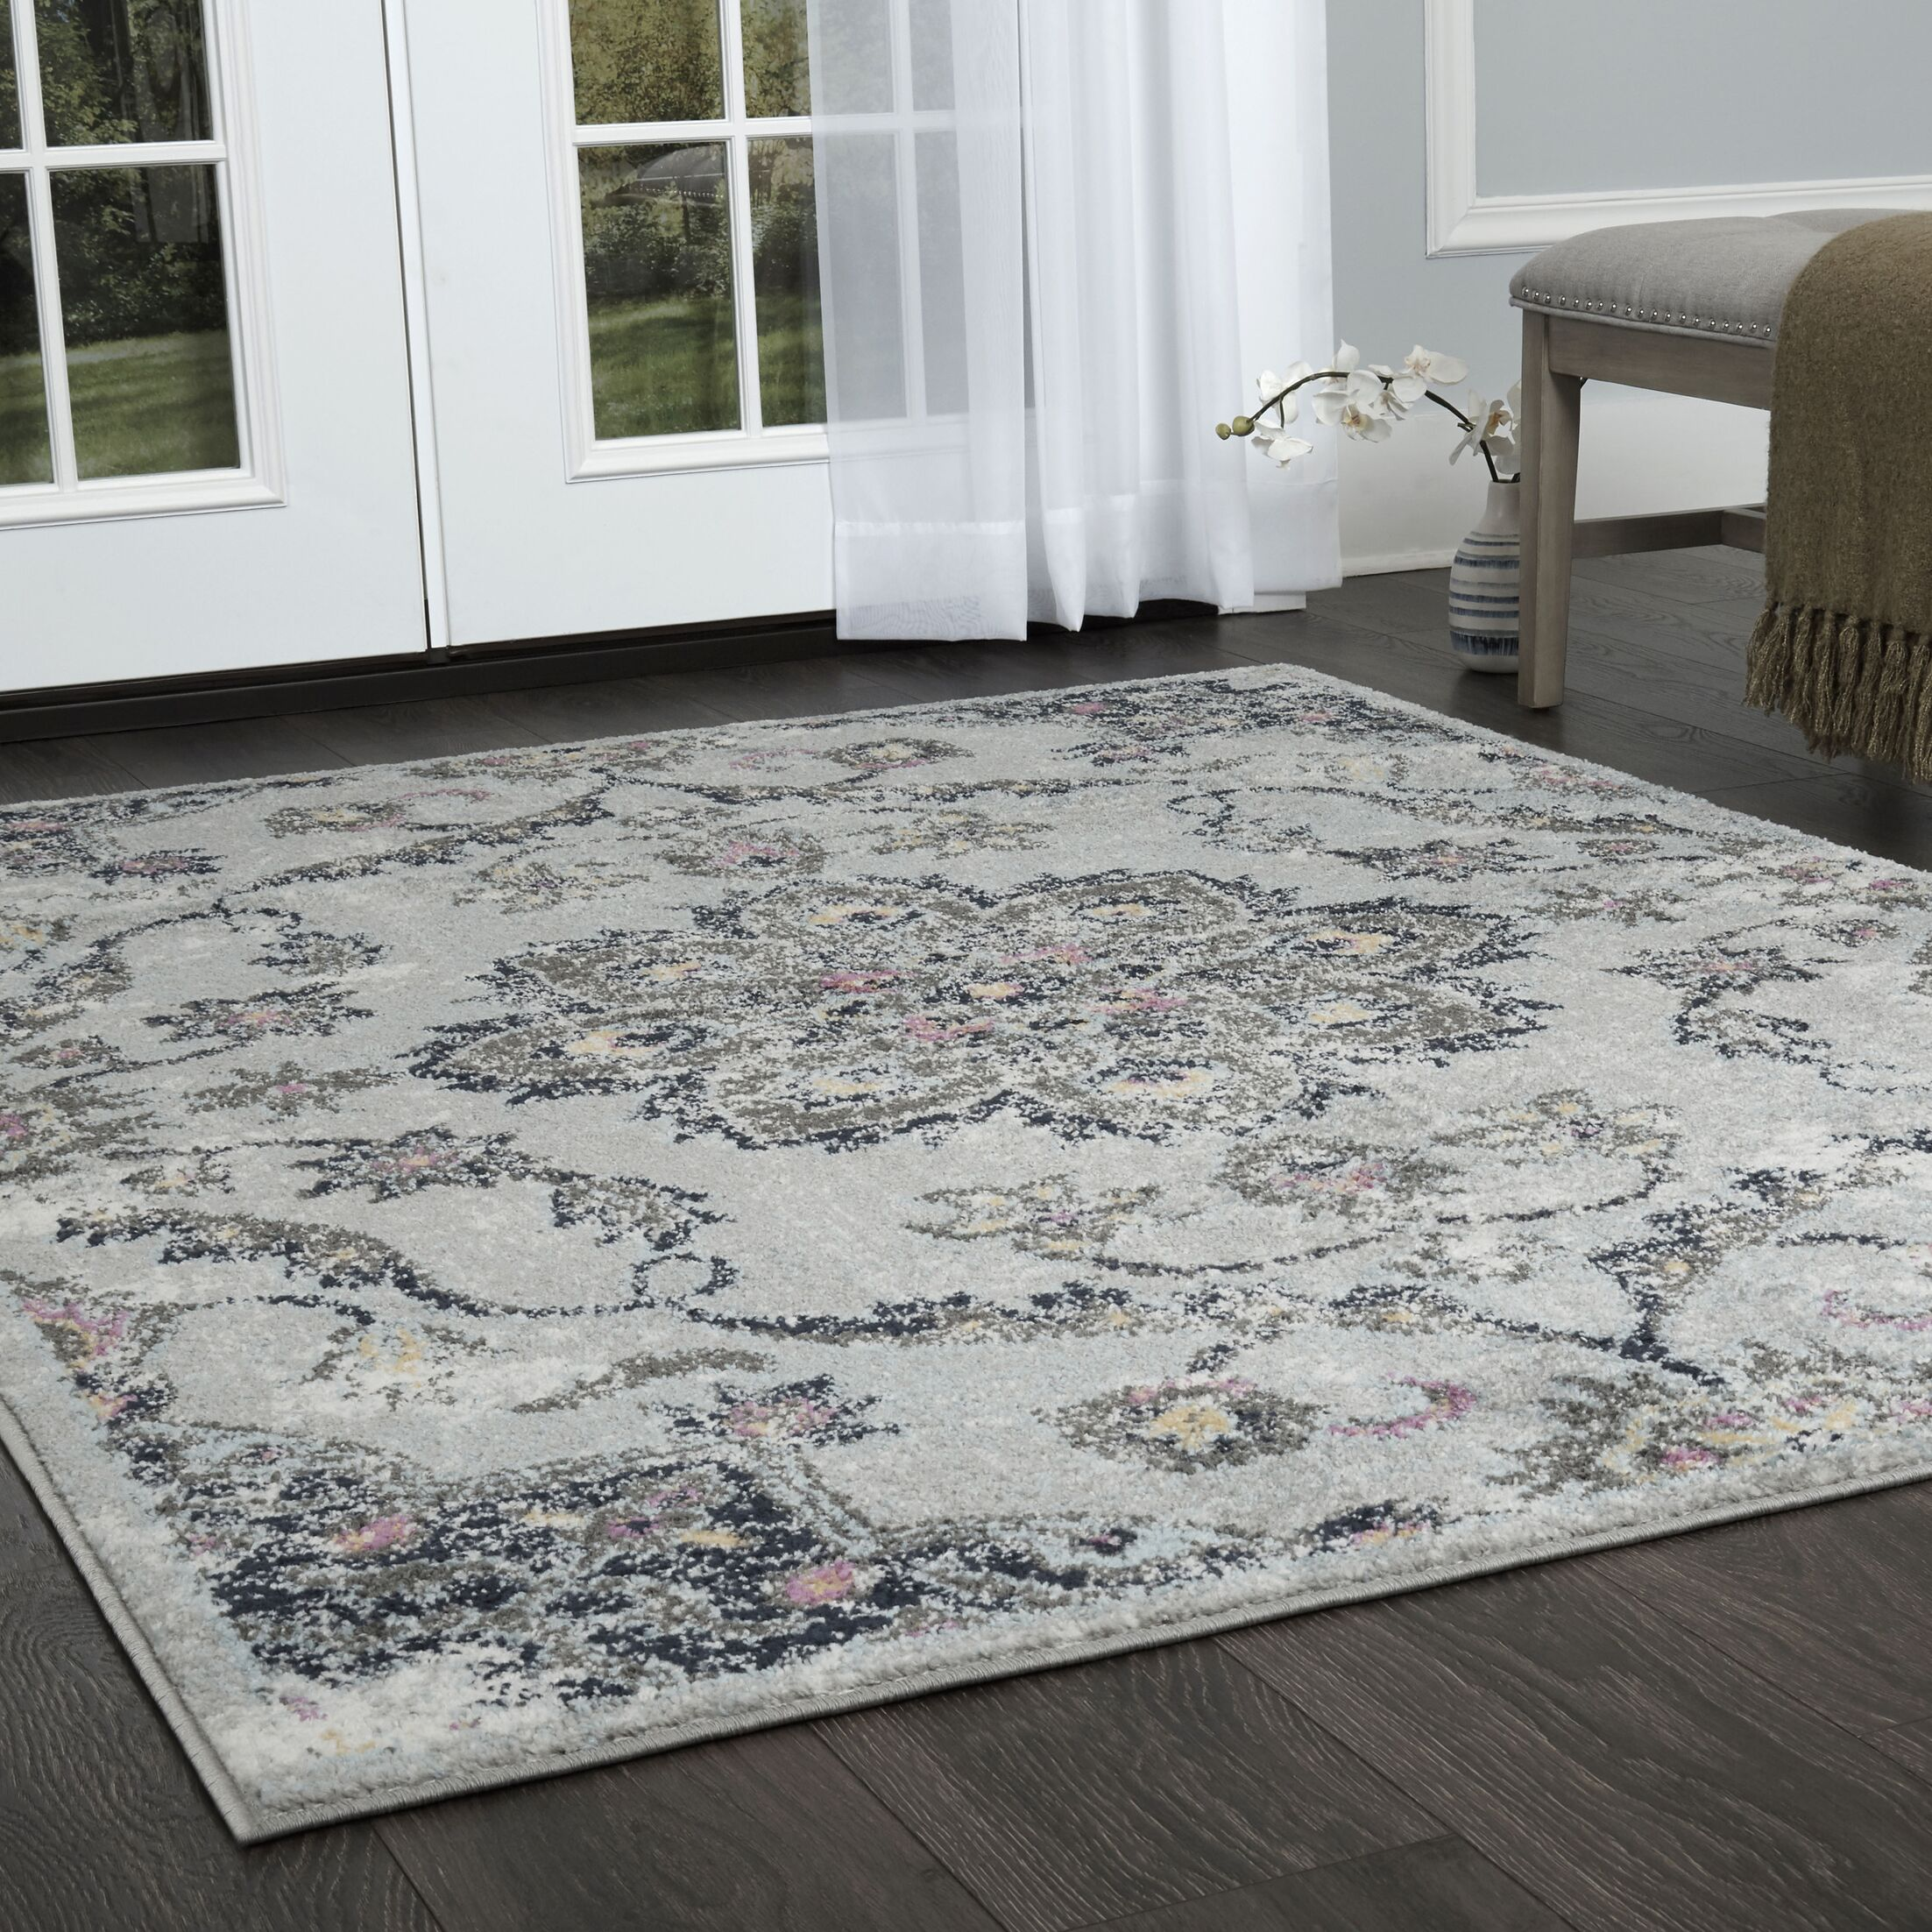 Tangela Distressed Gray Area Rug Rug Size: Rectangle 7'10